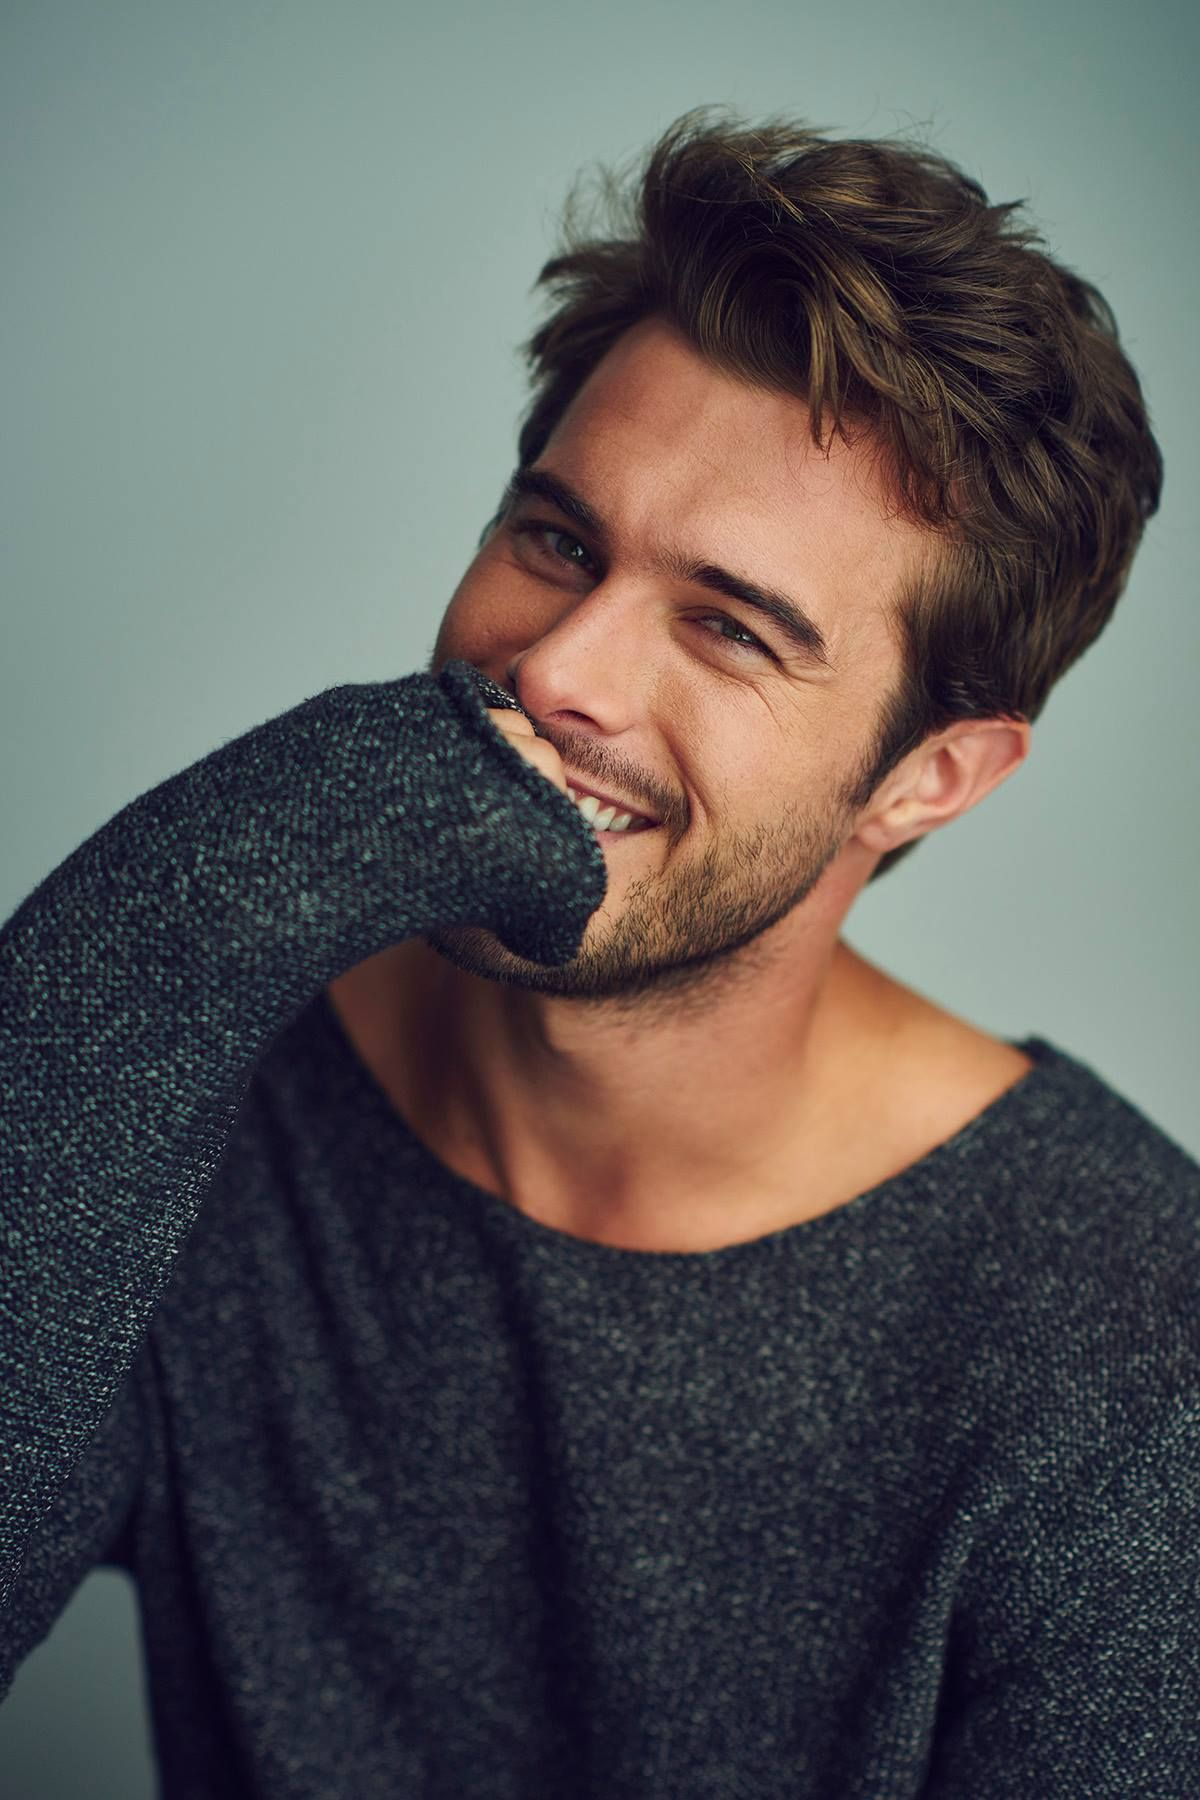 The Allure Of Man Alex Prange Ph Sierra Prescott Handsome In